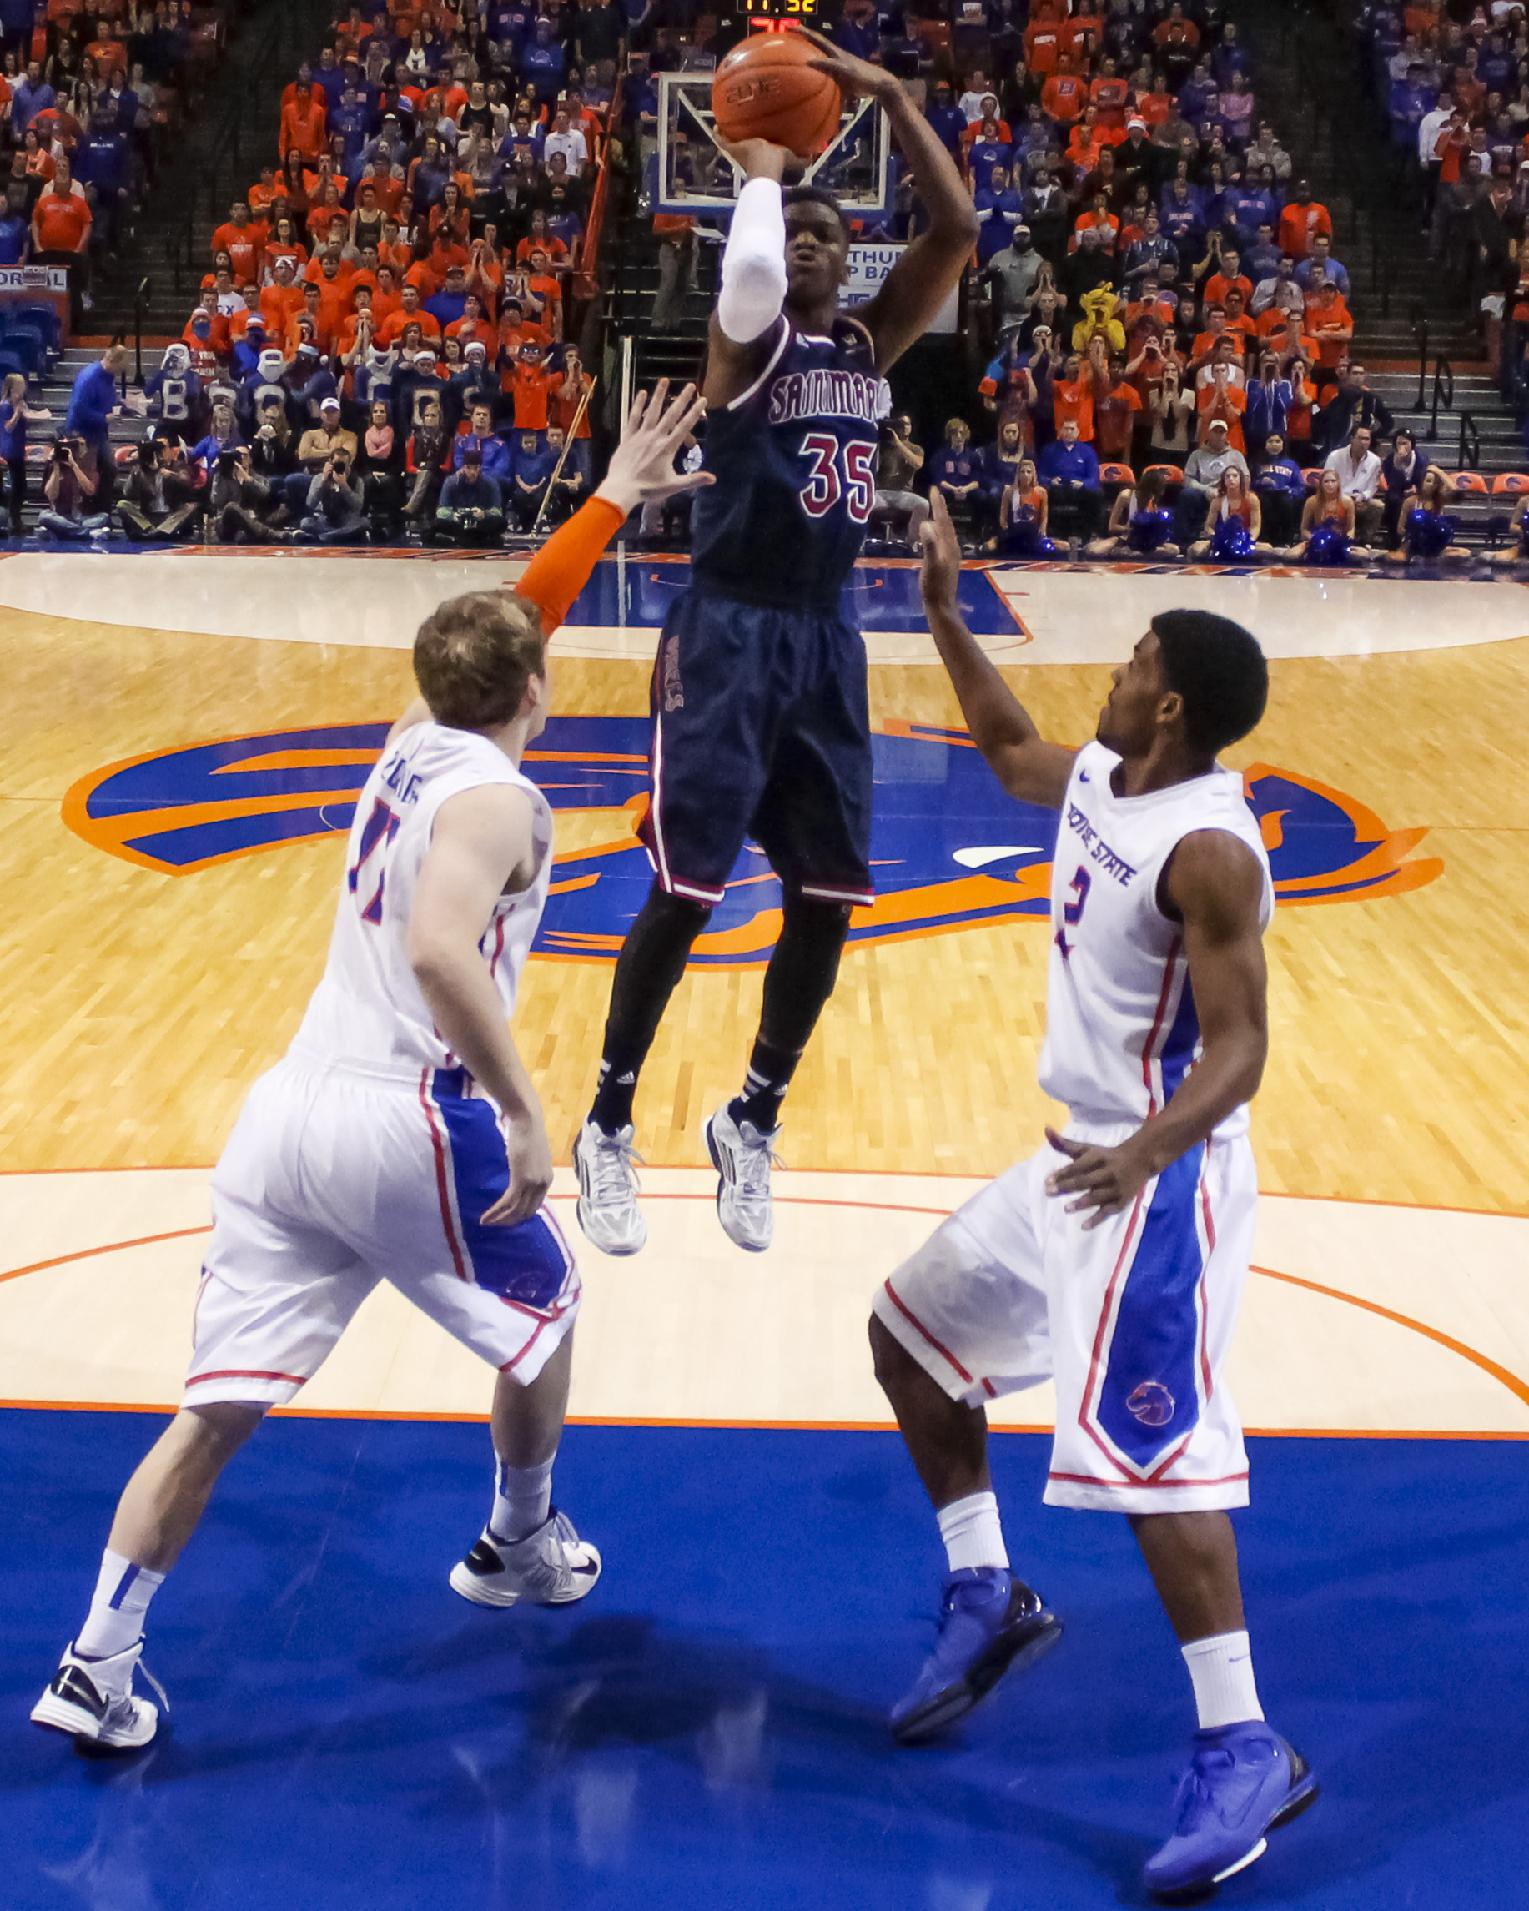 Saint Mary's James Walker III, center, shoots over Boise State's Jeff Elorriaga, left, and Derrick Marks, right, during the first half of an NCAA college basketball game in Boise, Idaho, Saturday, Dec. 14, 2013. Saint Mary's defeated Boise State 82-74